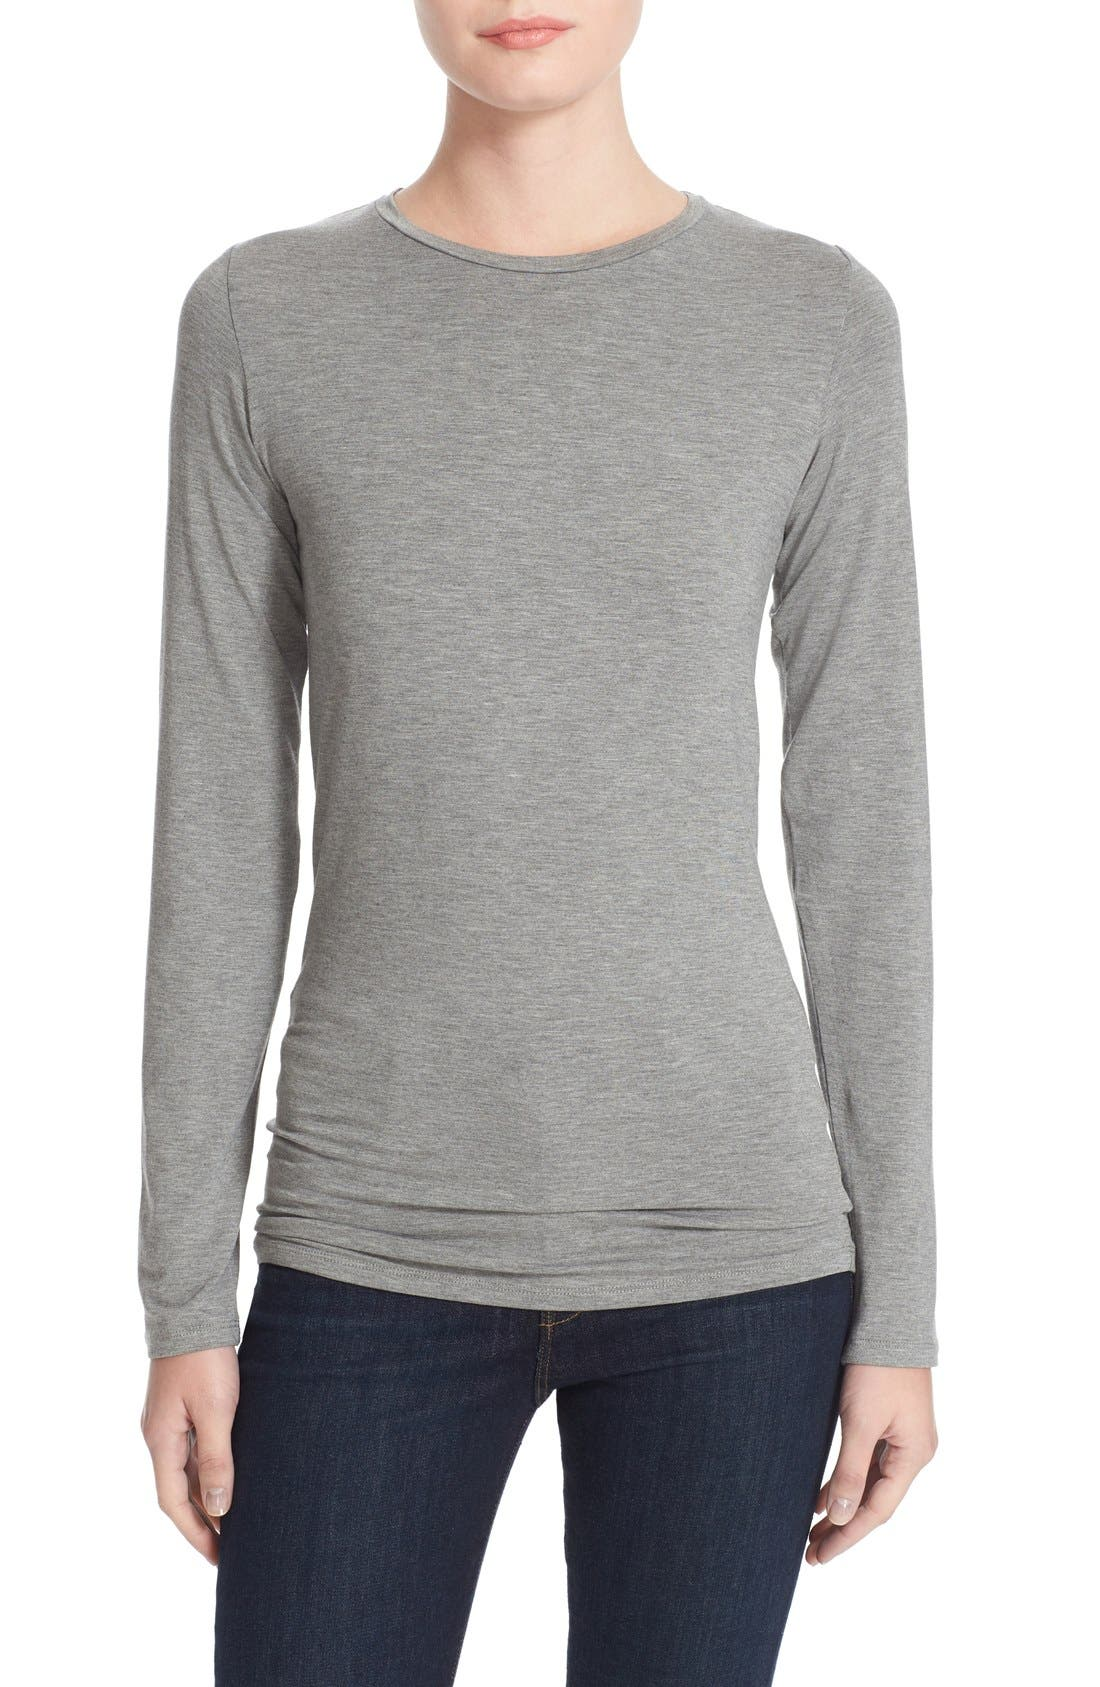 Majestic Filatures Long Sleeve Crewneck Top